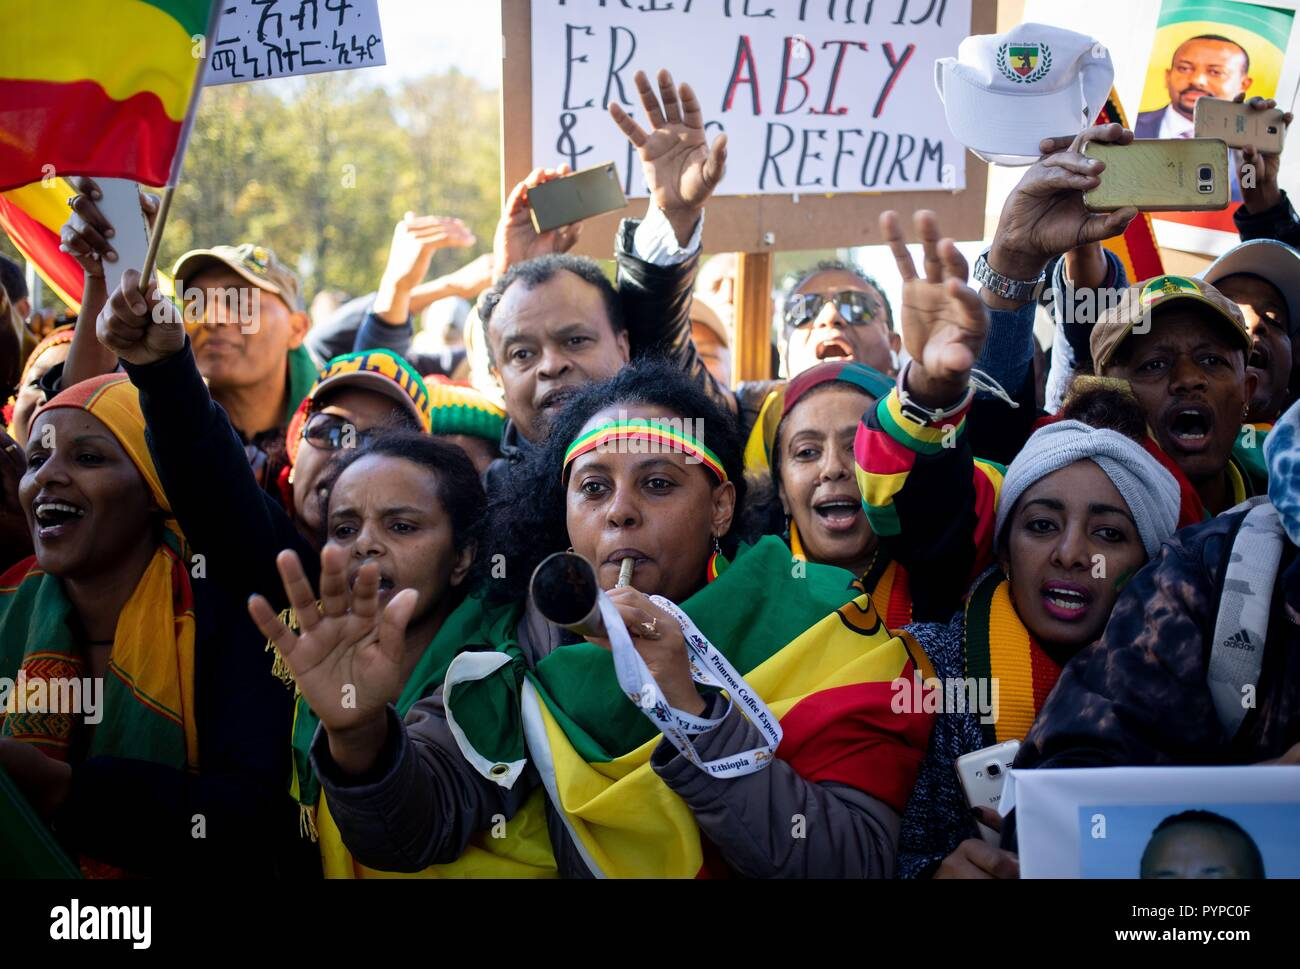 Berlin, Germany. 30th Oct, 2018. The Prime Minister of the Democratic Federal Republic of Ethiopia is welcomed by his supporters on Pariser Platz in front of the Brandenburg Gate. Eleven heads of state and government meet in the capital for the summit meeting. It is about an initiative for more private investment in Africa, which Merkel launched last year as President of the Group of Leading Economic Powers (G20). Credit: Kay Nietfeld/dpa/Alamy Live News - Stock Image